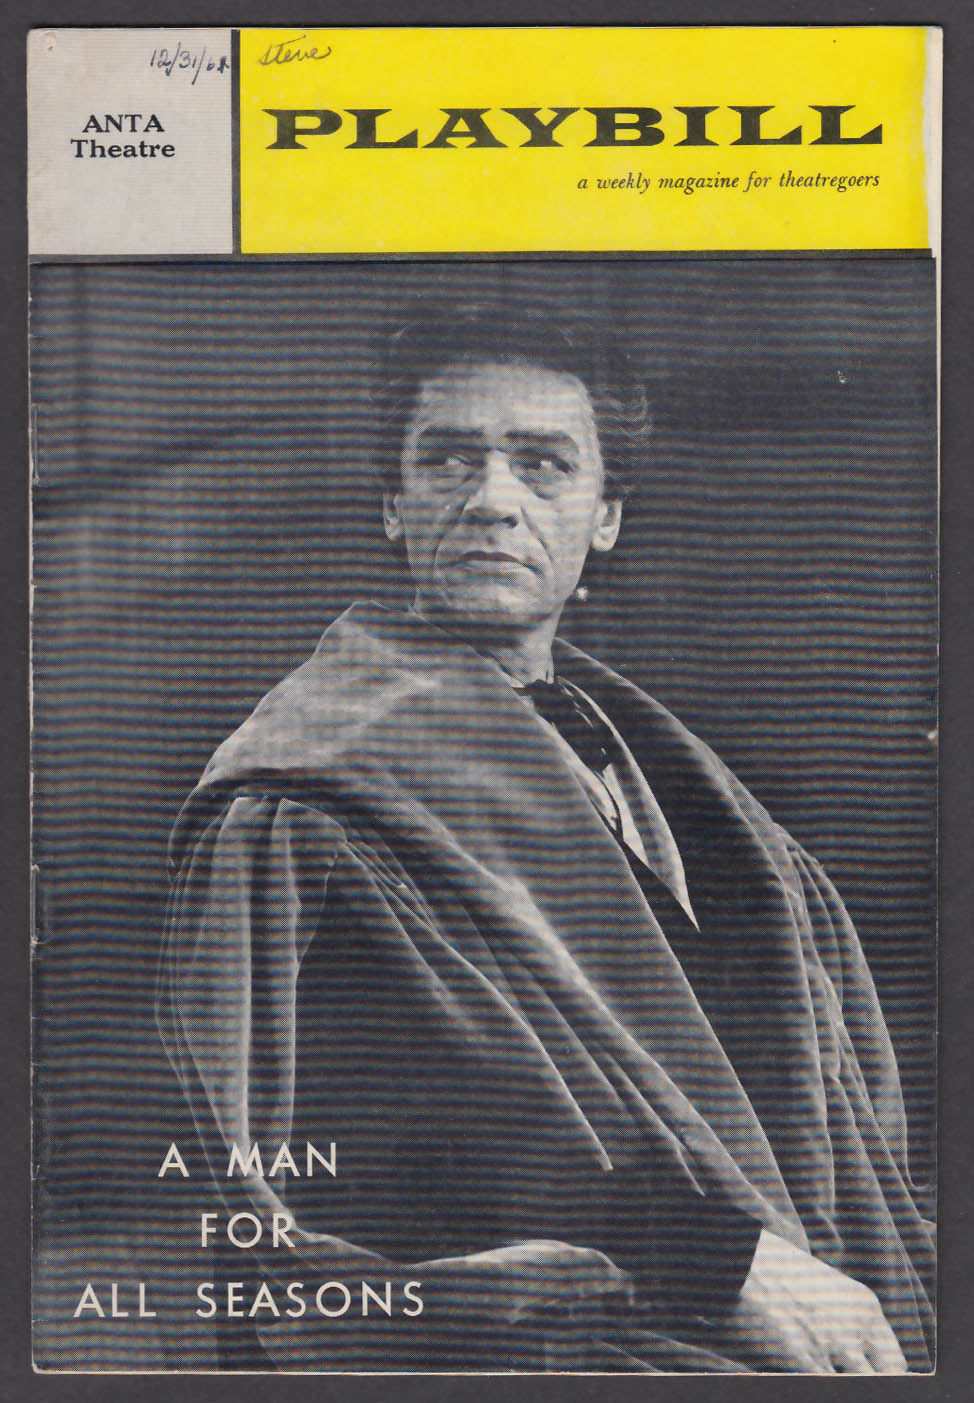 Image for Paul Scofield Man for All Seasons 1st run Playbill 1962